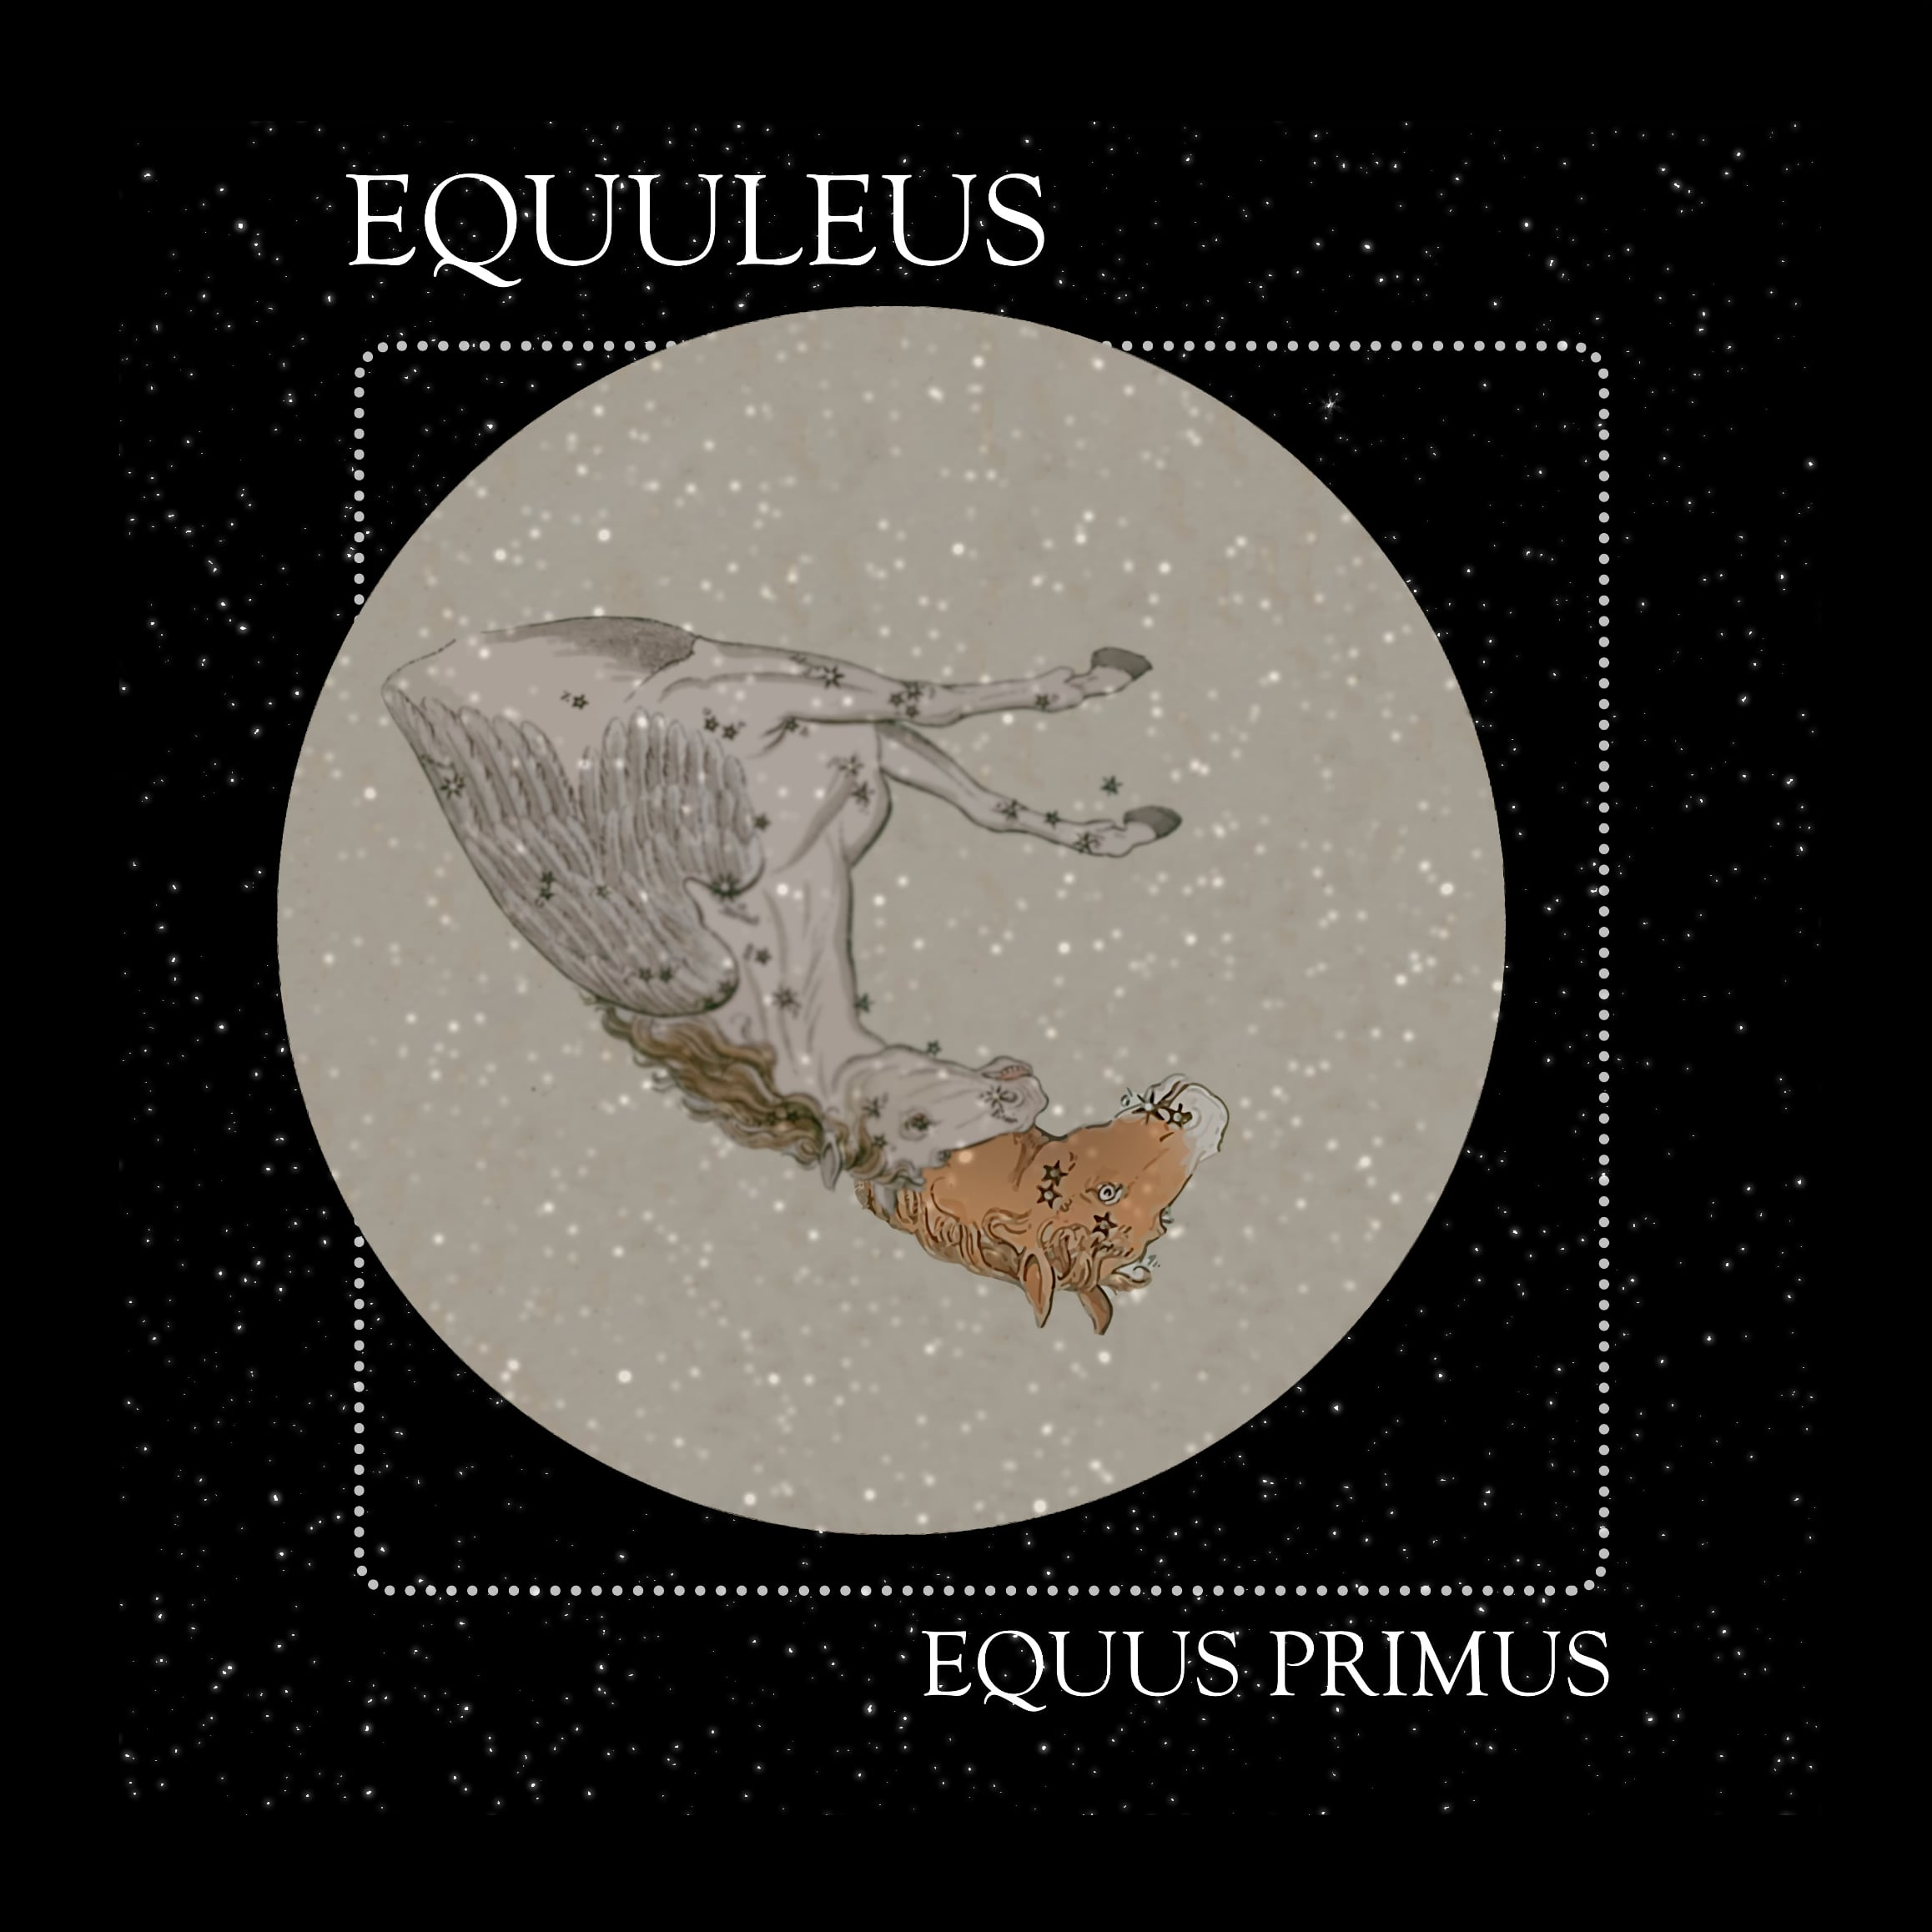 12 Equus Primus: The Constellation of Equuleus